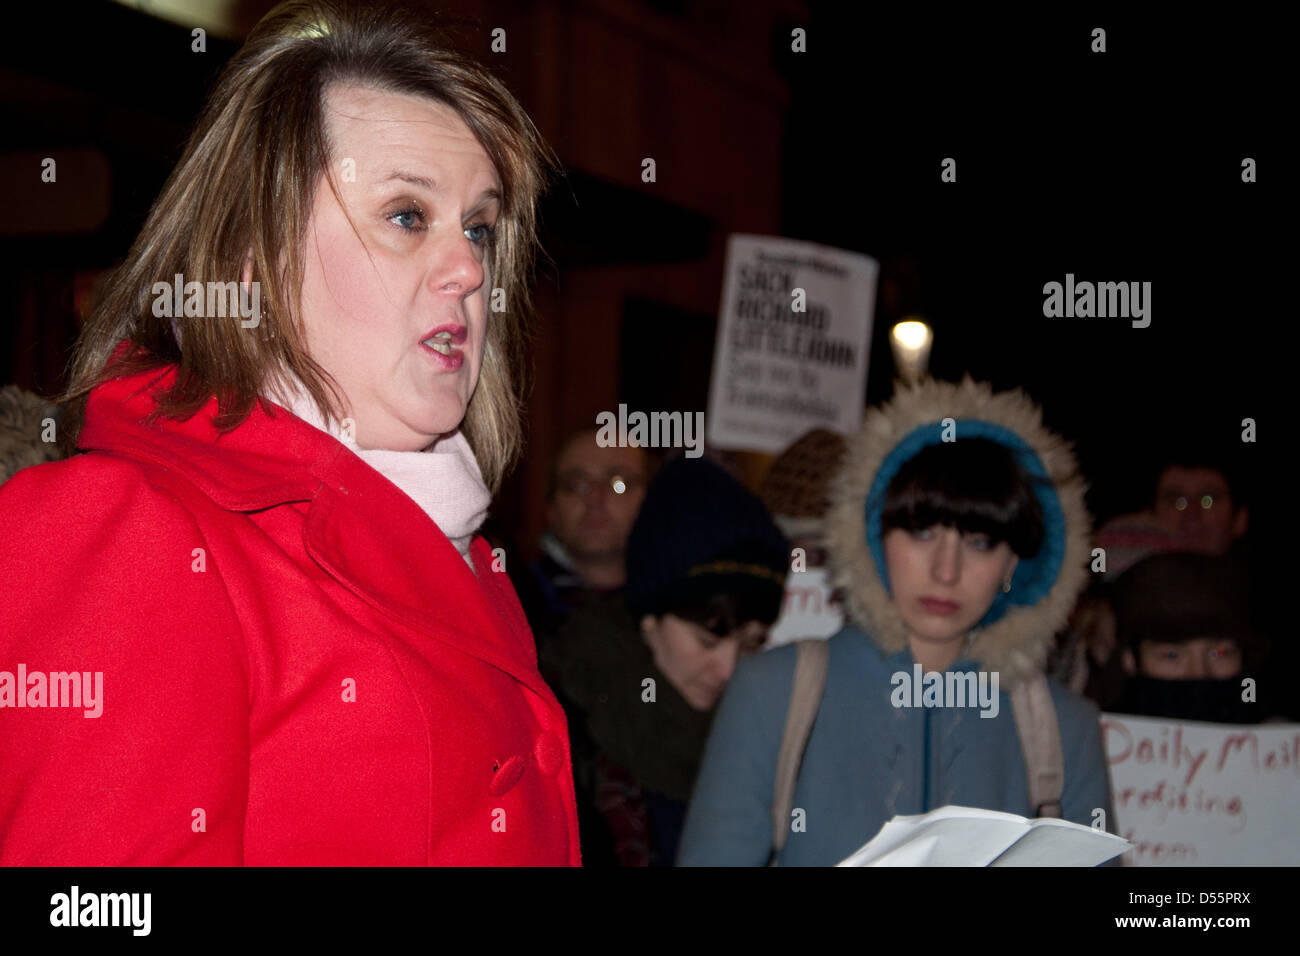 London, UK. 25th March, 2013.   A woman speaks at a candle-lit vigil held in memory of deceased schoolteacher Lucy - Stock Image